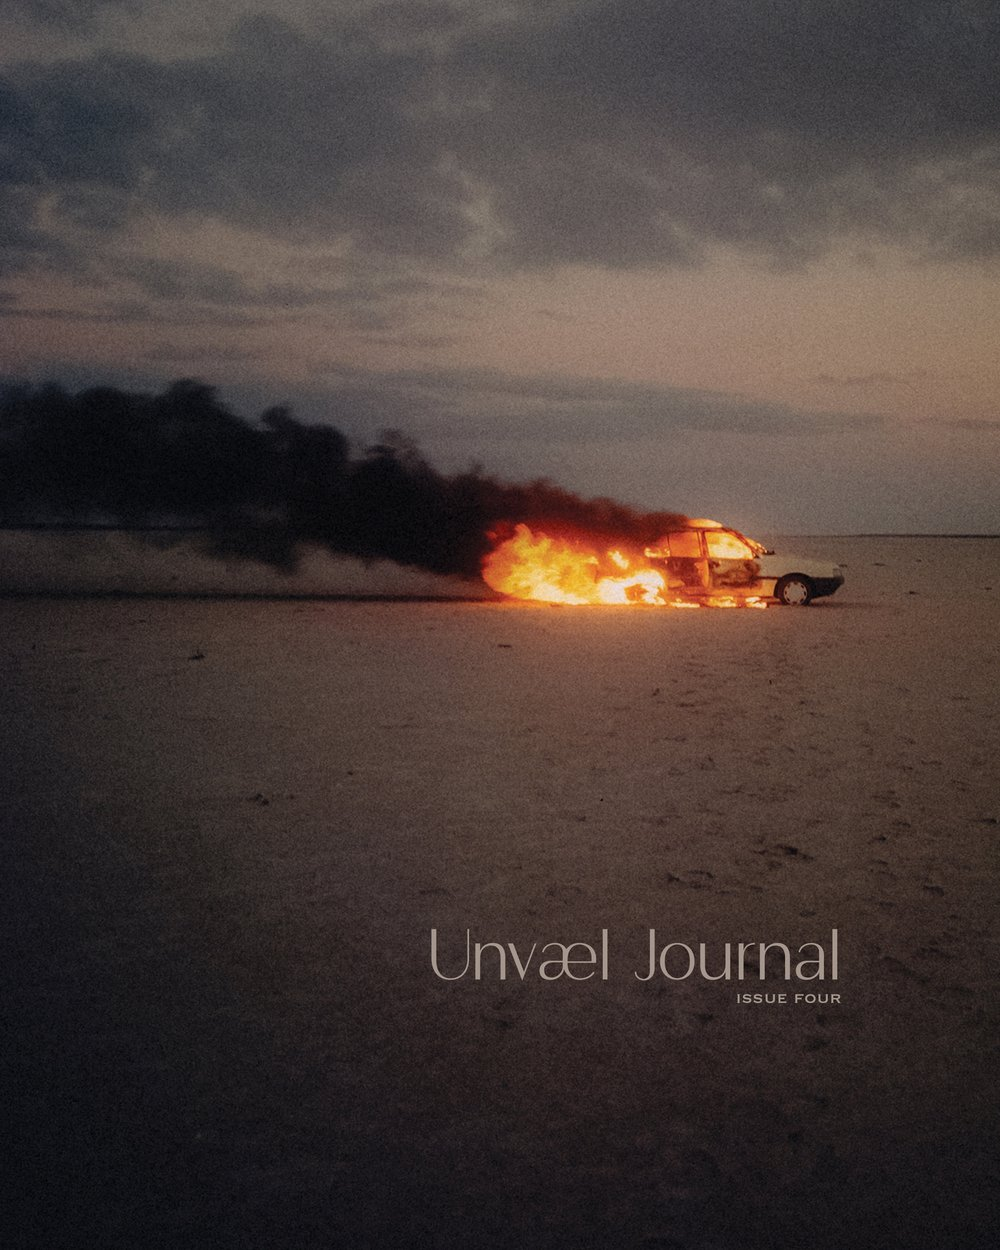 Journal Issue Four / Less than 40 copies remain so get yours today at the discounted price!